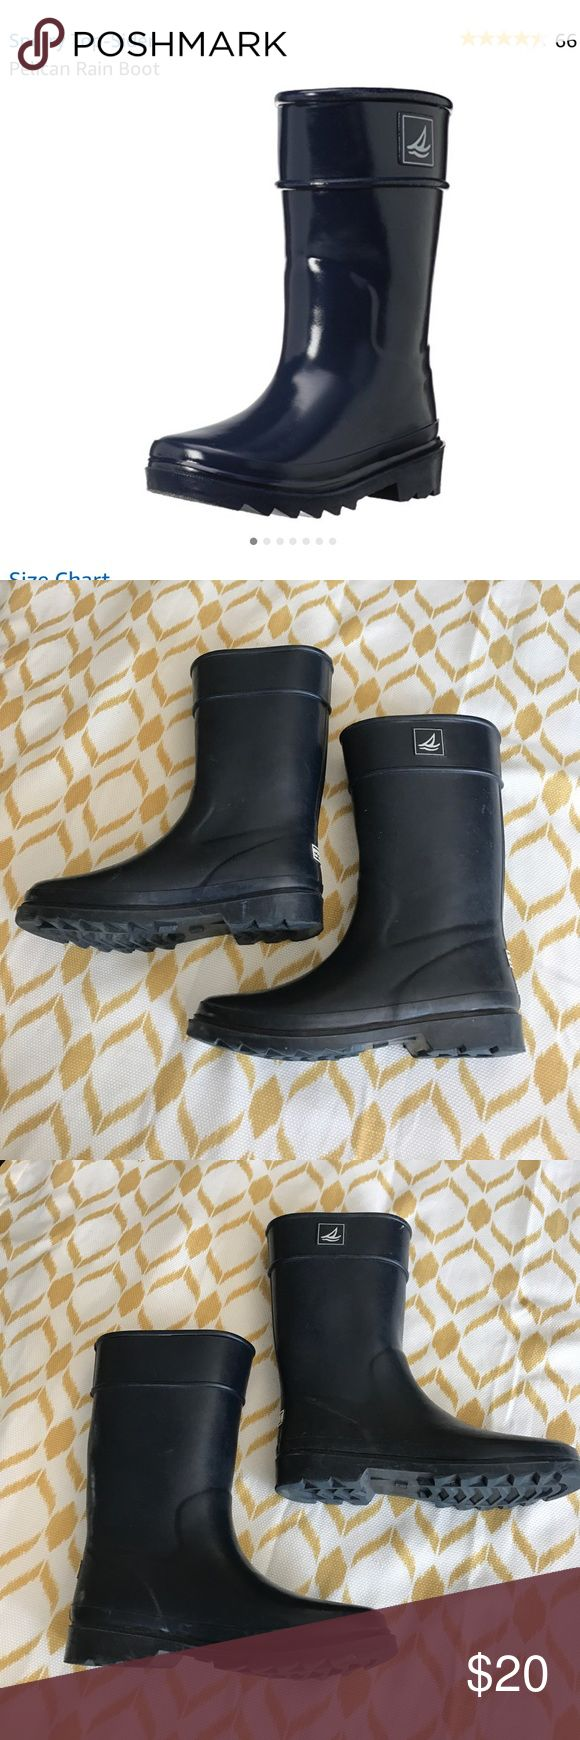 """Boys sperry rain boots pelican navy size 4 Boys sperry rain boots size """"big boy"""" 4. Boots are tall knee length, not ankle length. Boots are """"pelican navy"""" color, have some minor wearing/scuff at the tips but overall still in good shape. Sperry Top-Sider Shoes Rain & Snow Boots"""